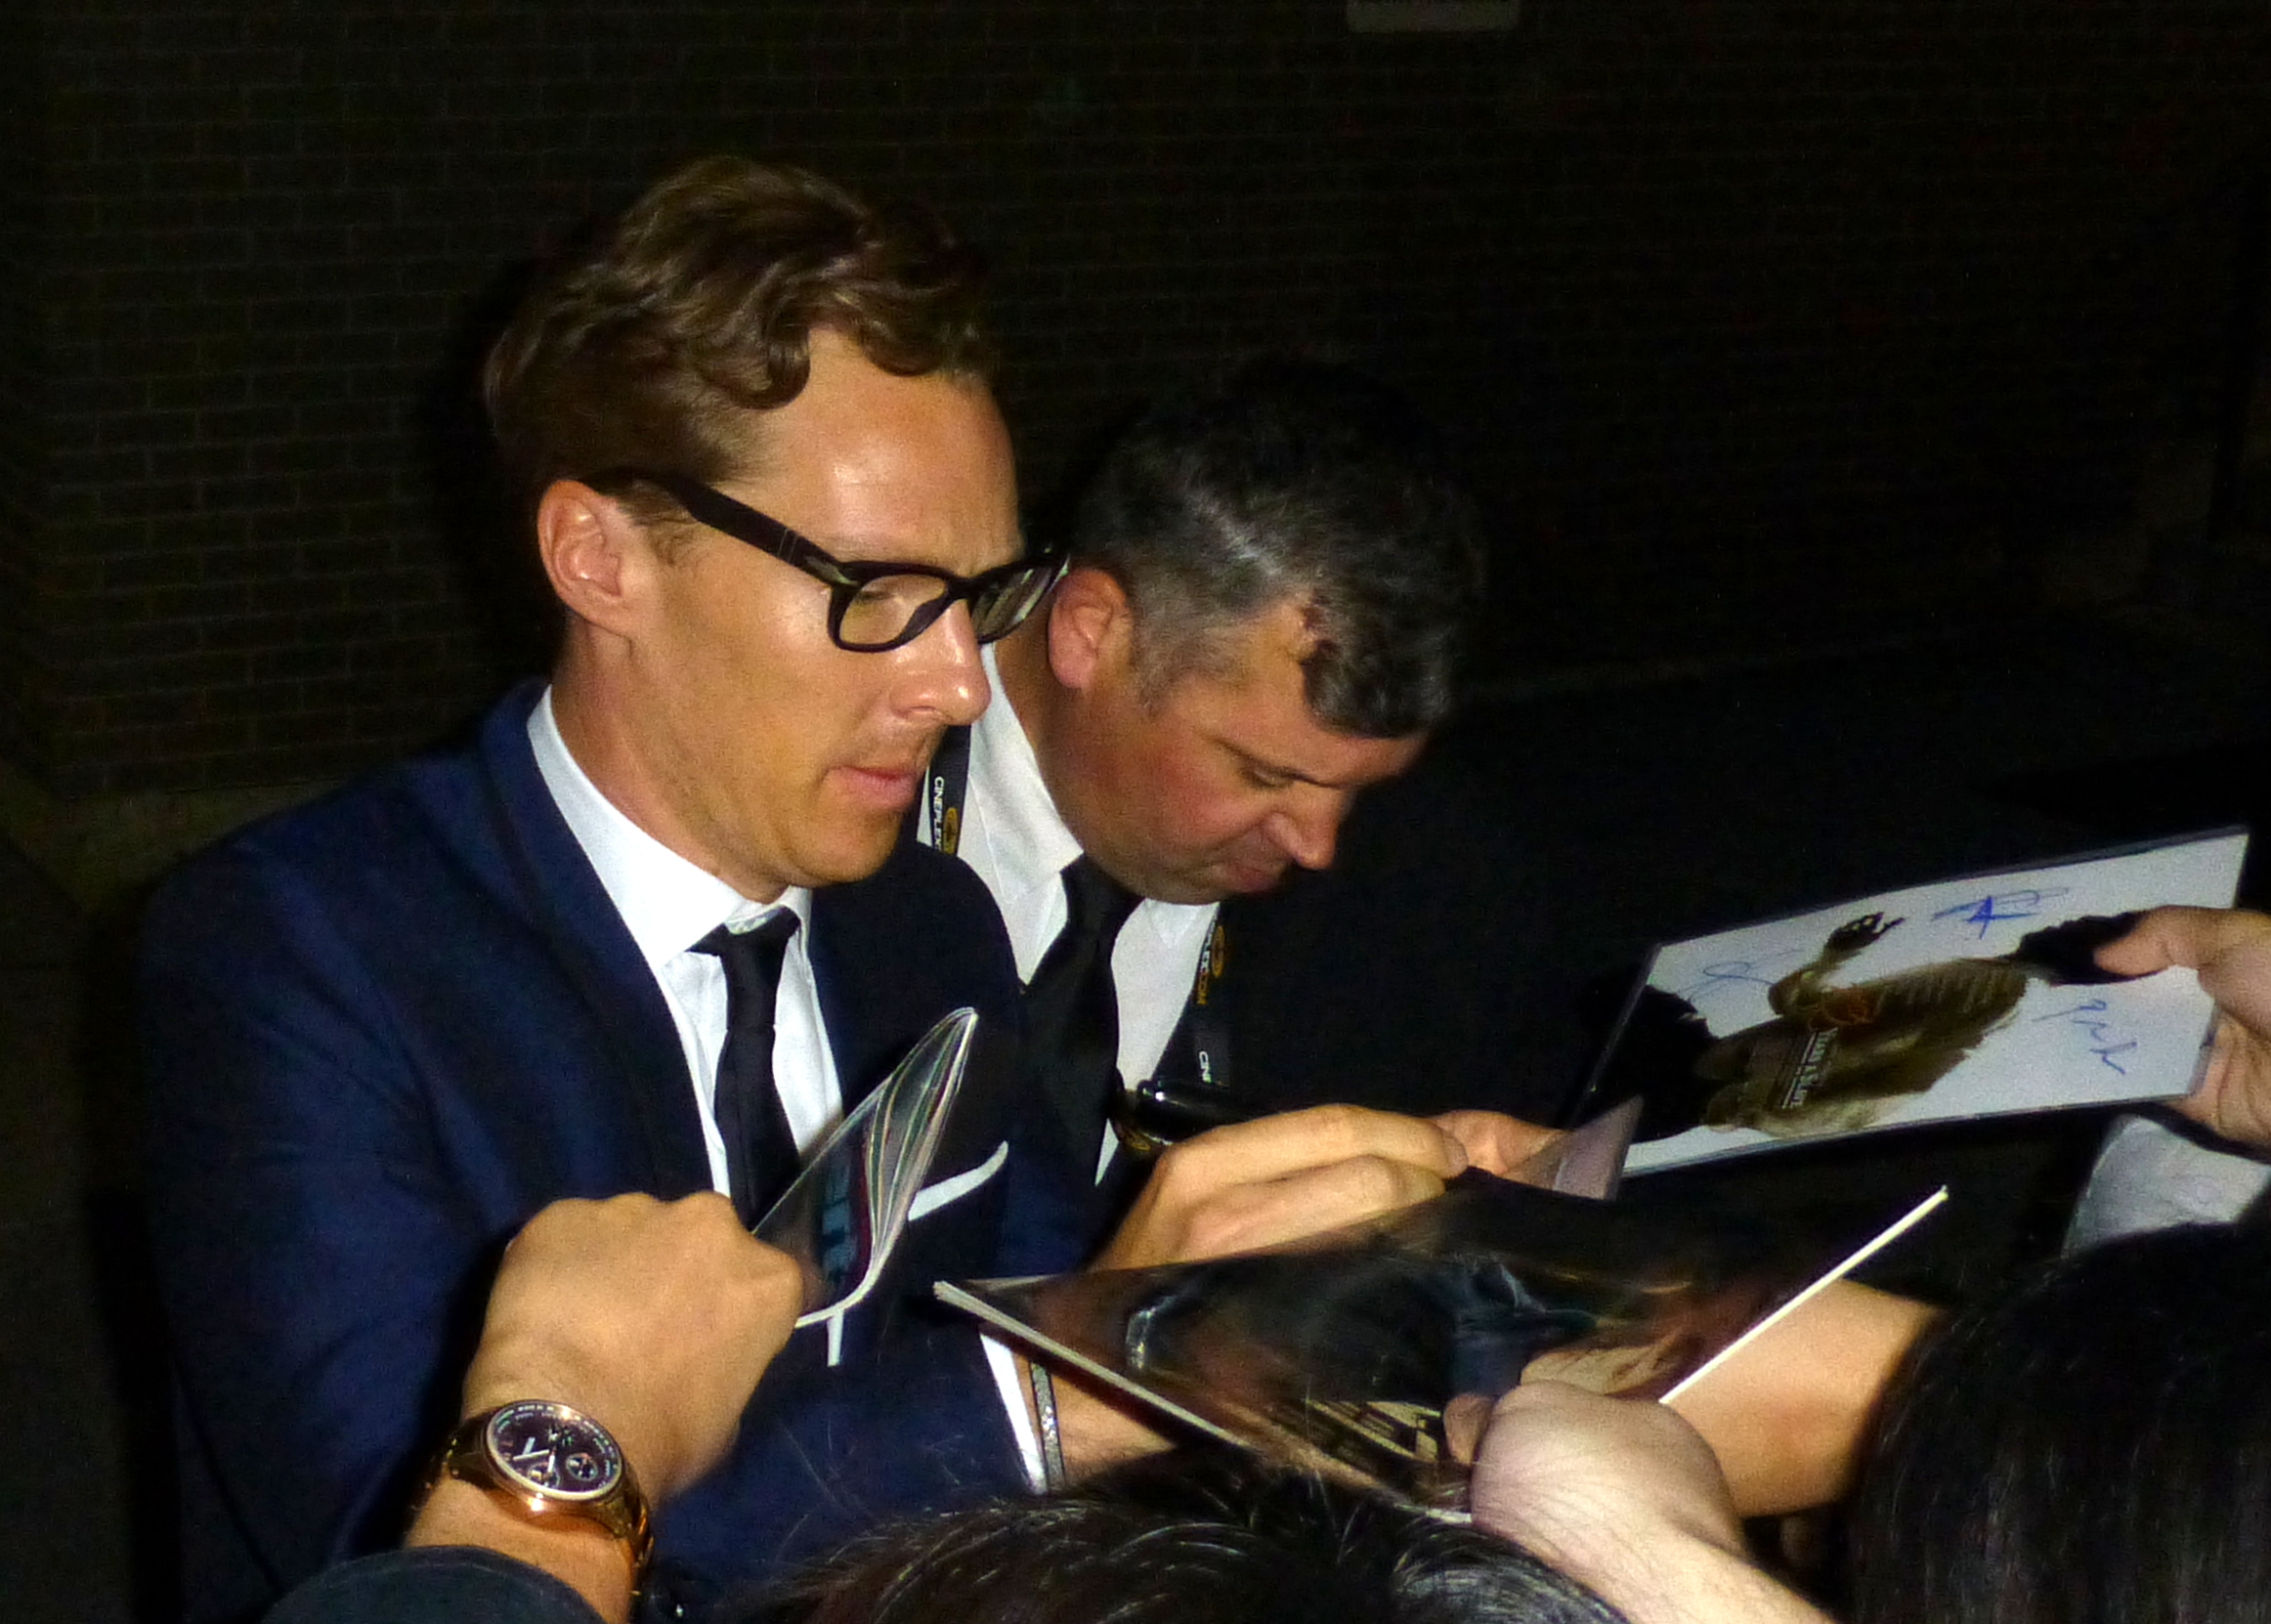 the-imitation-game-benedict-cumberbatch-imitation-game-10-tiff-2014